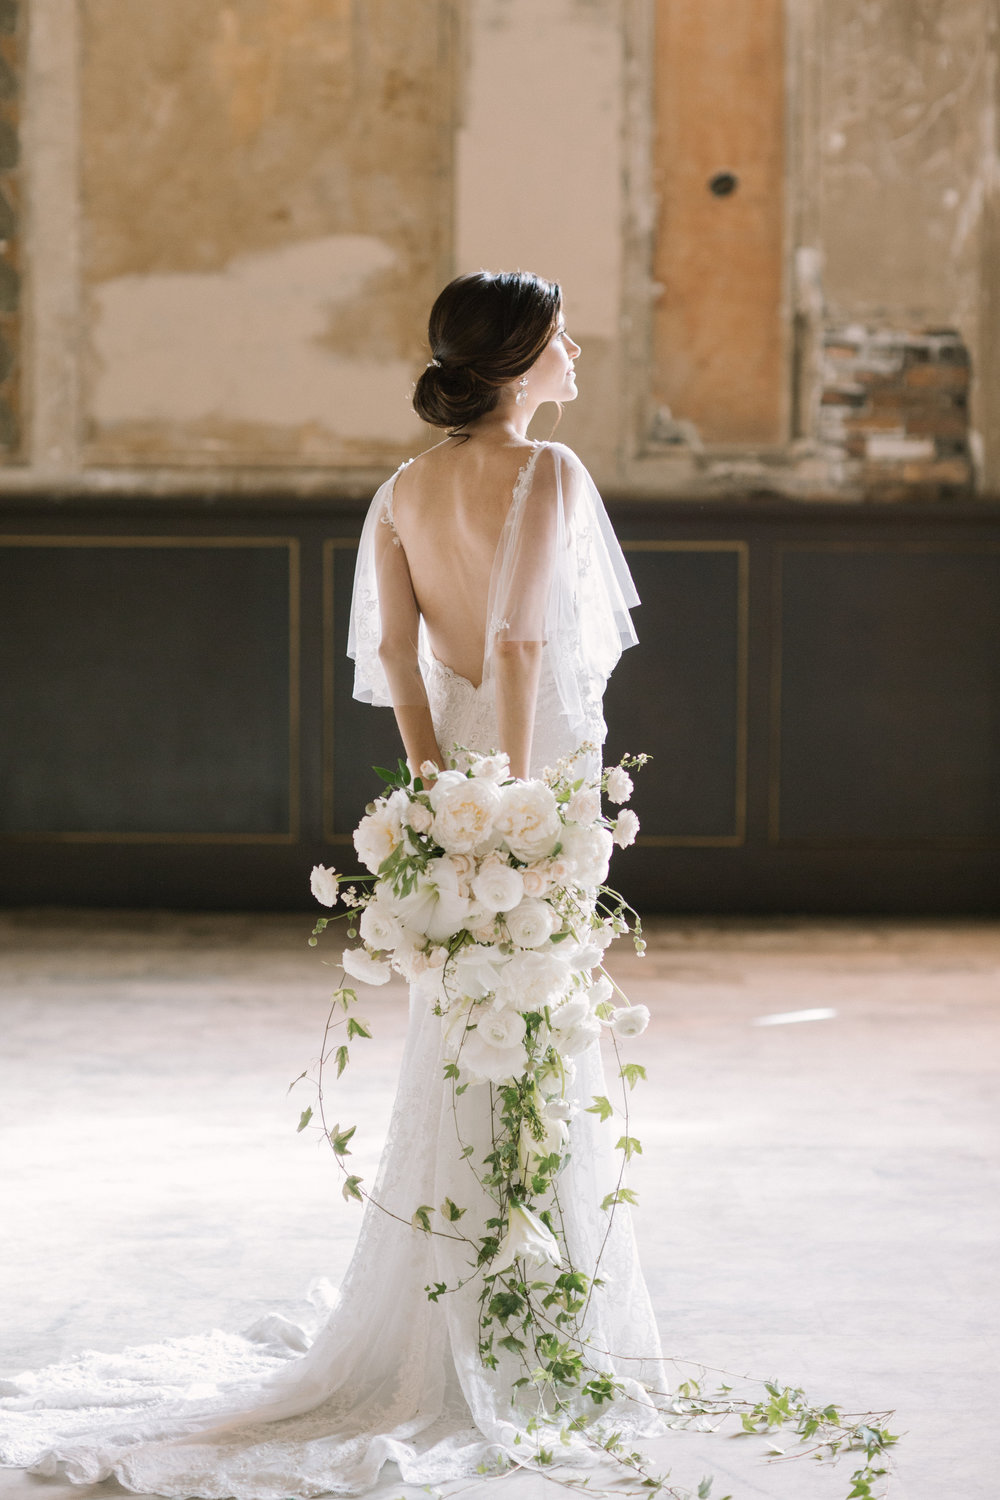 A classic bridal bouquet. This was a delight to design.